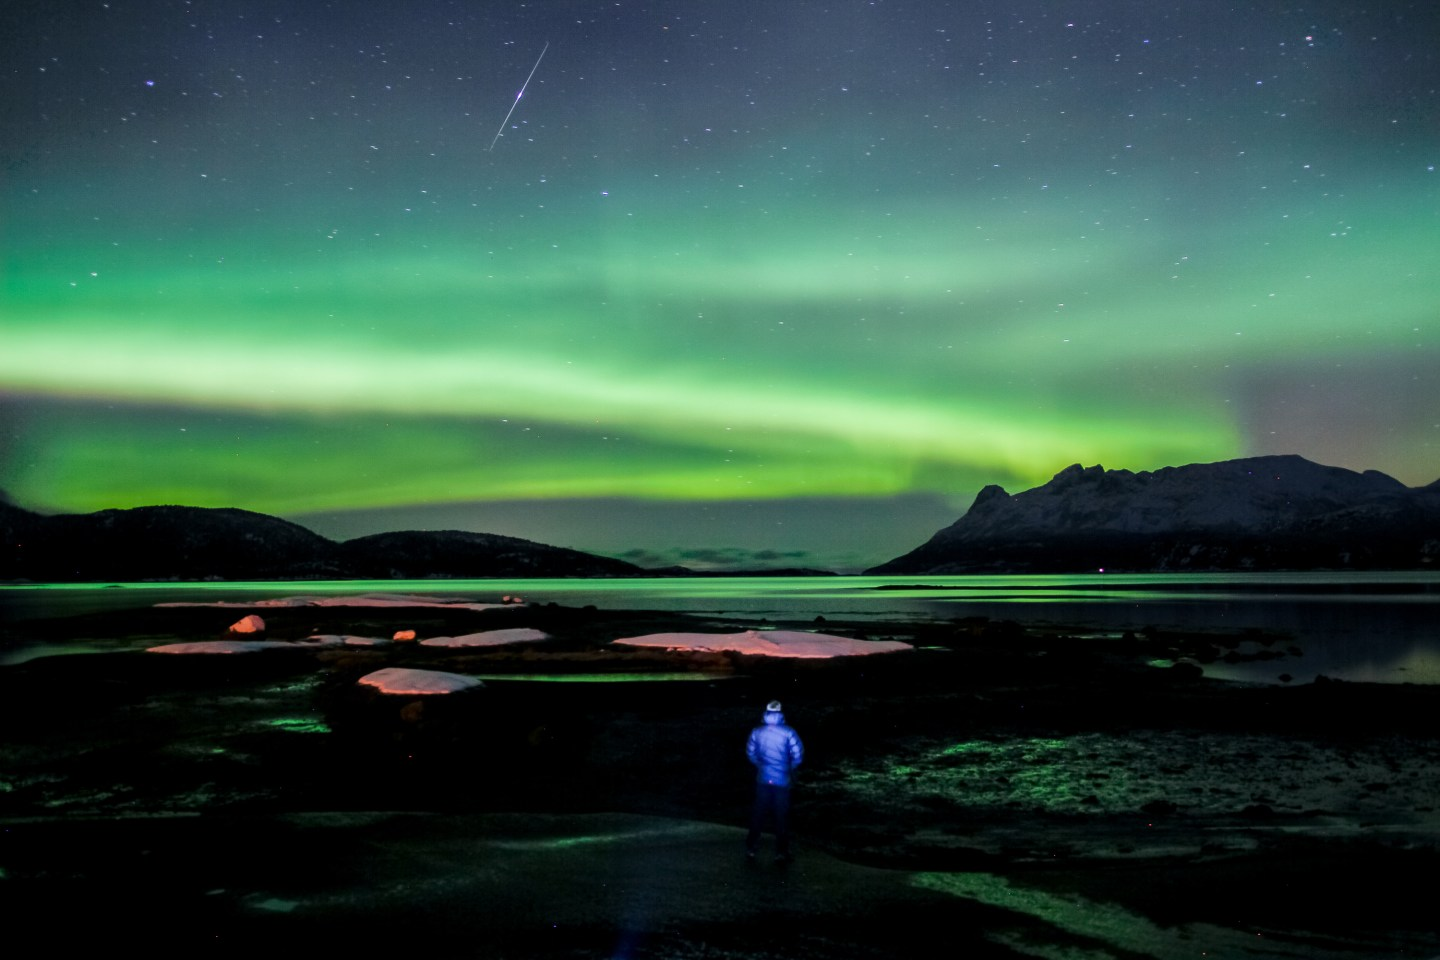 Man watching the northern lights in Hamarøy, Norway